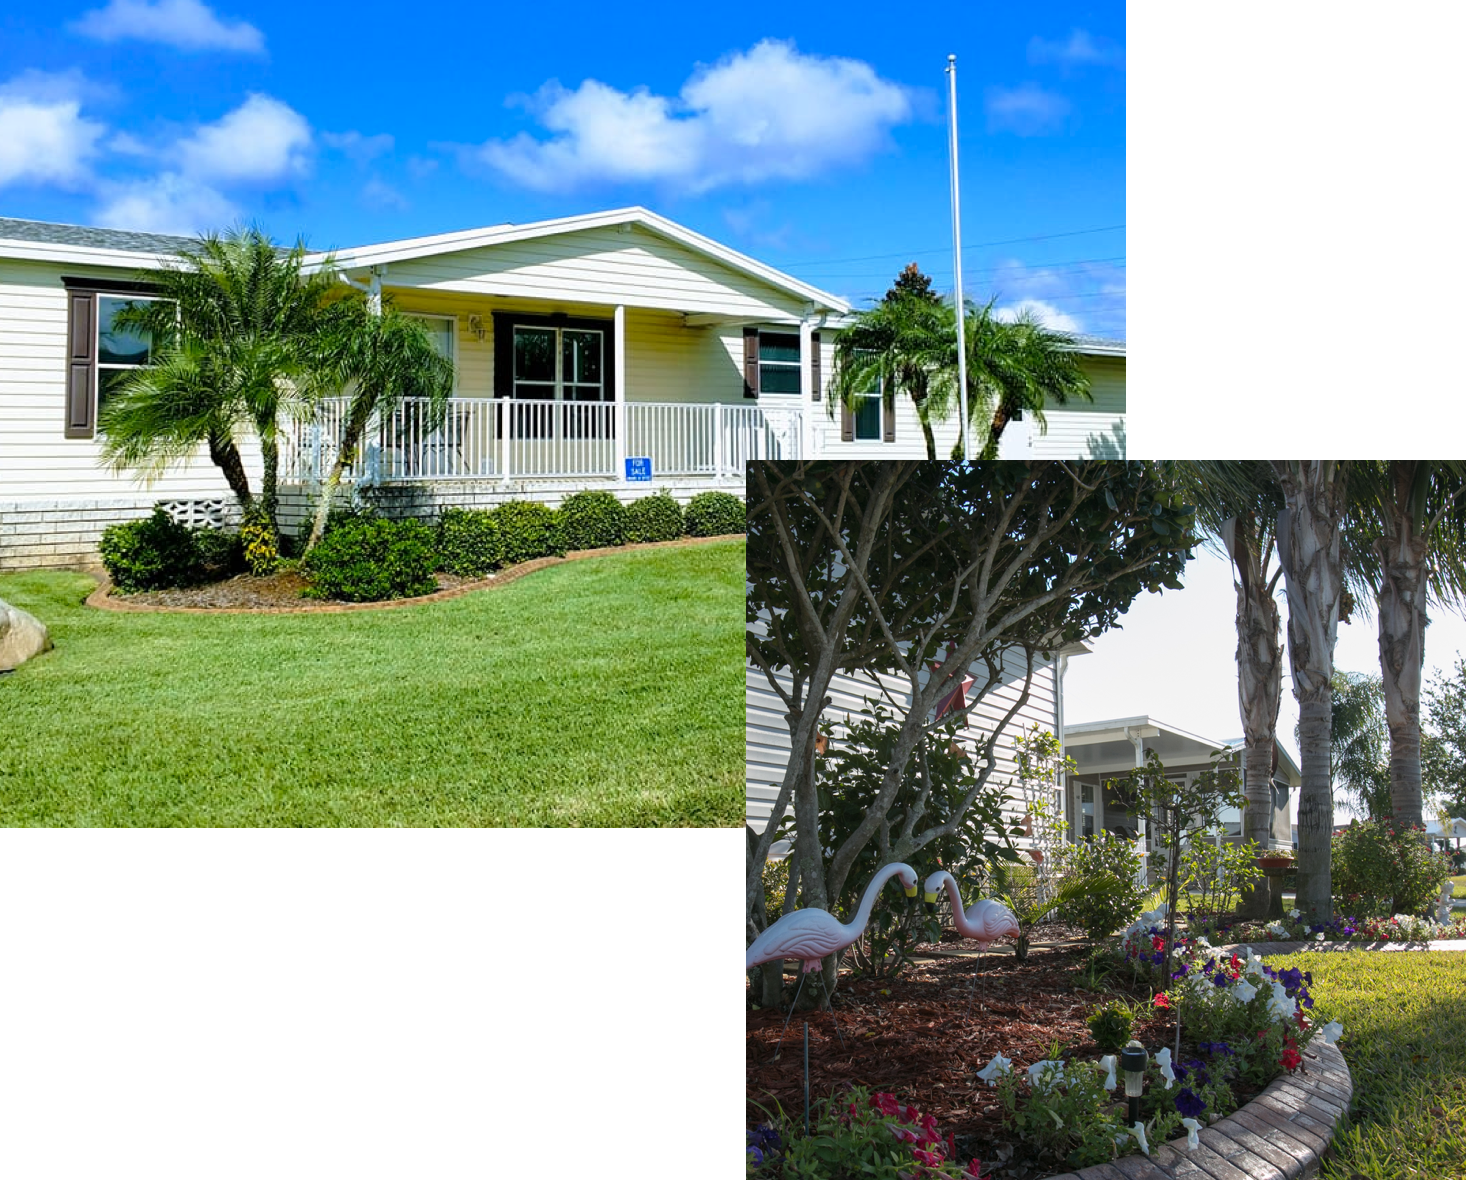 Mobile Homes for Sale Central Florida, Manufactured Housing FL